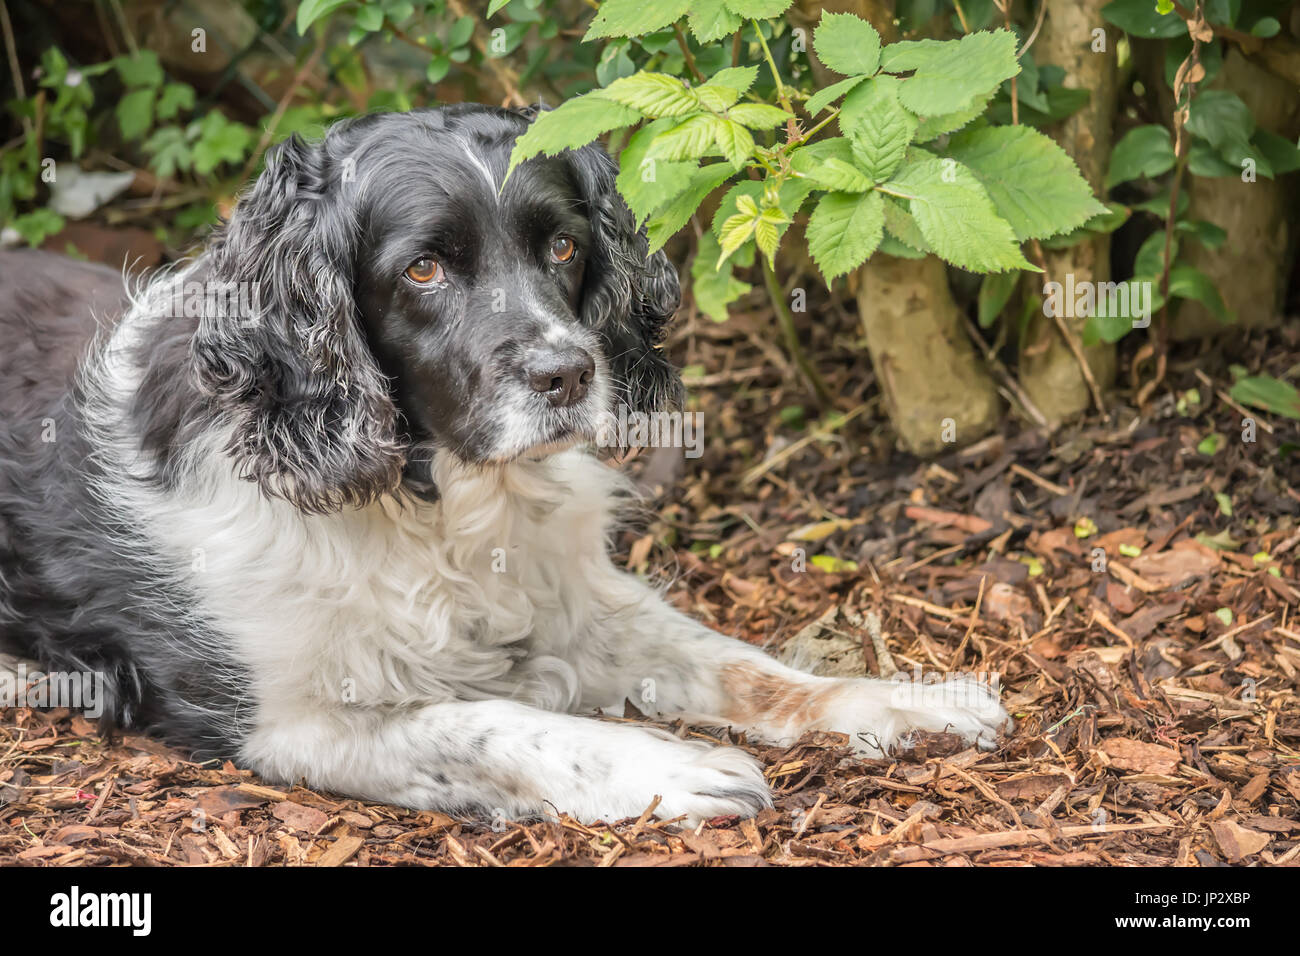 English springer spaniel relaxing in the garden - Stock Image